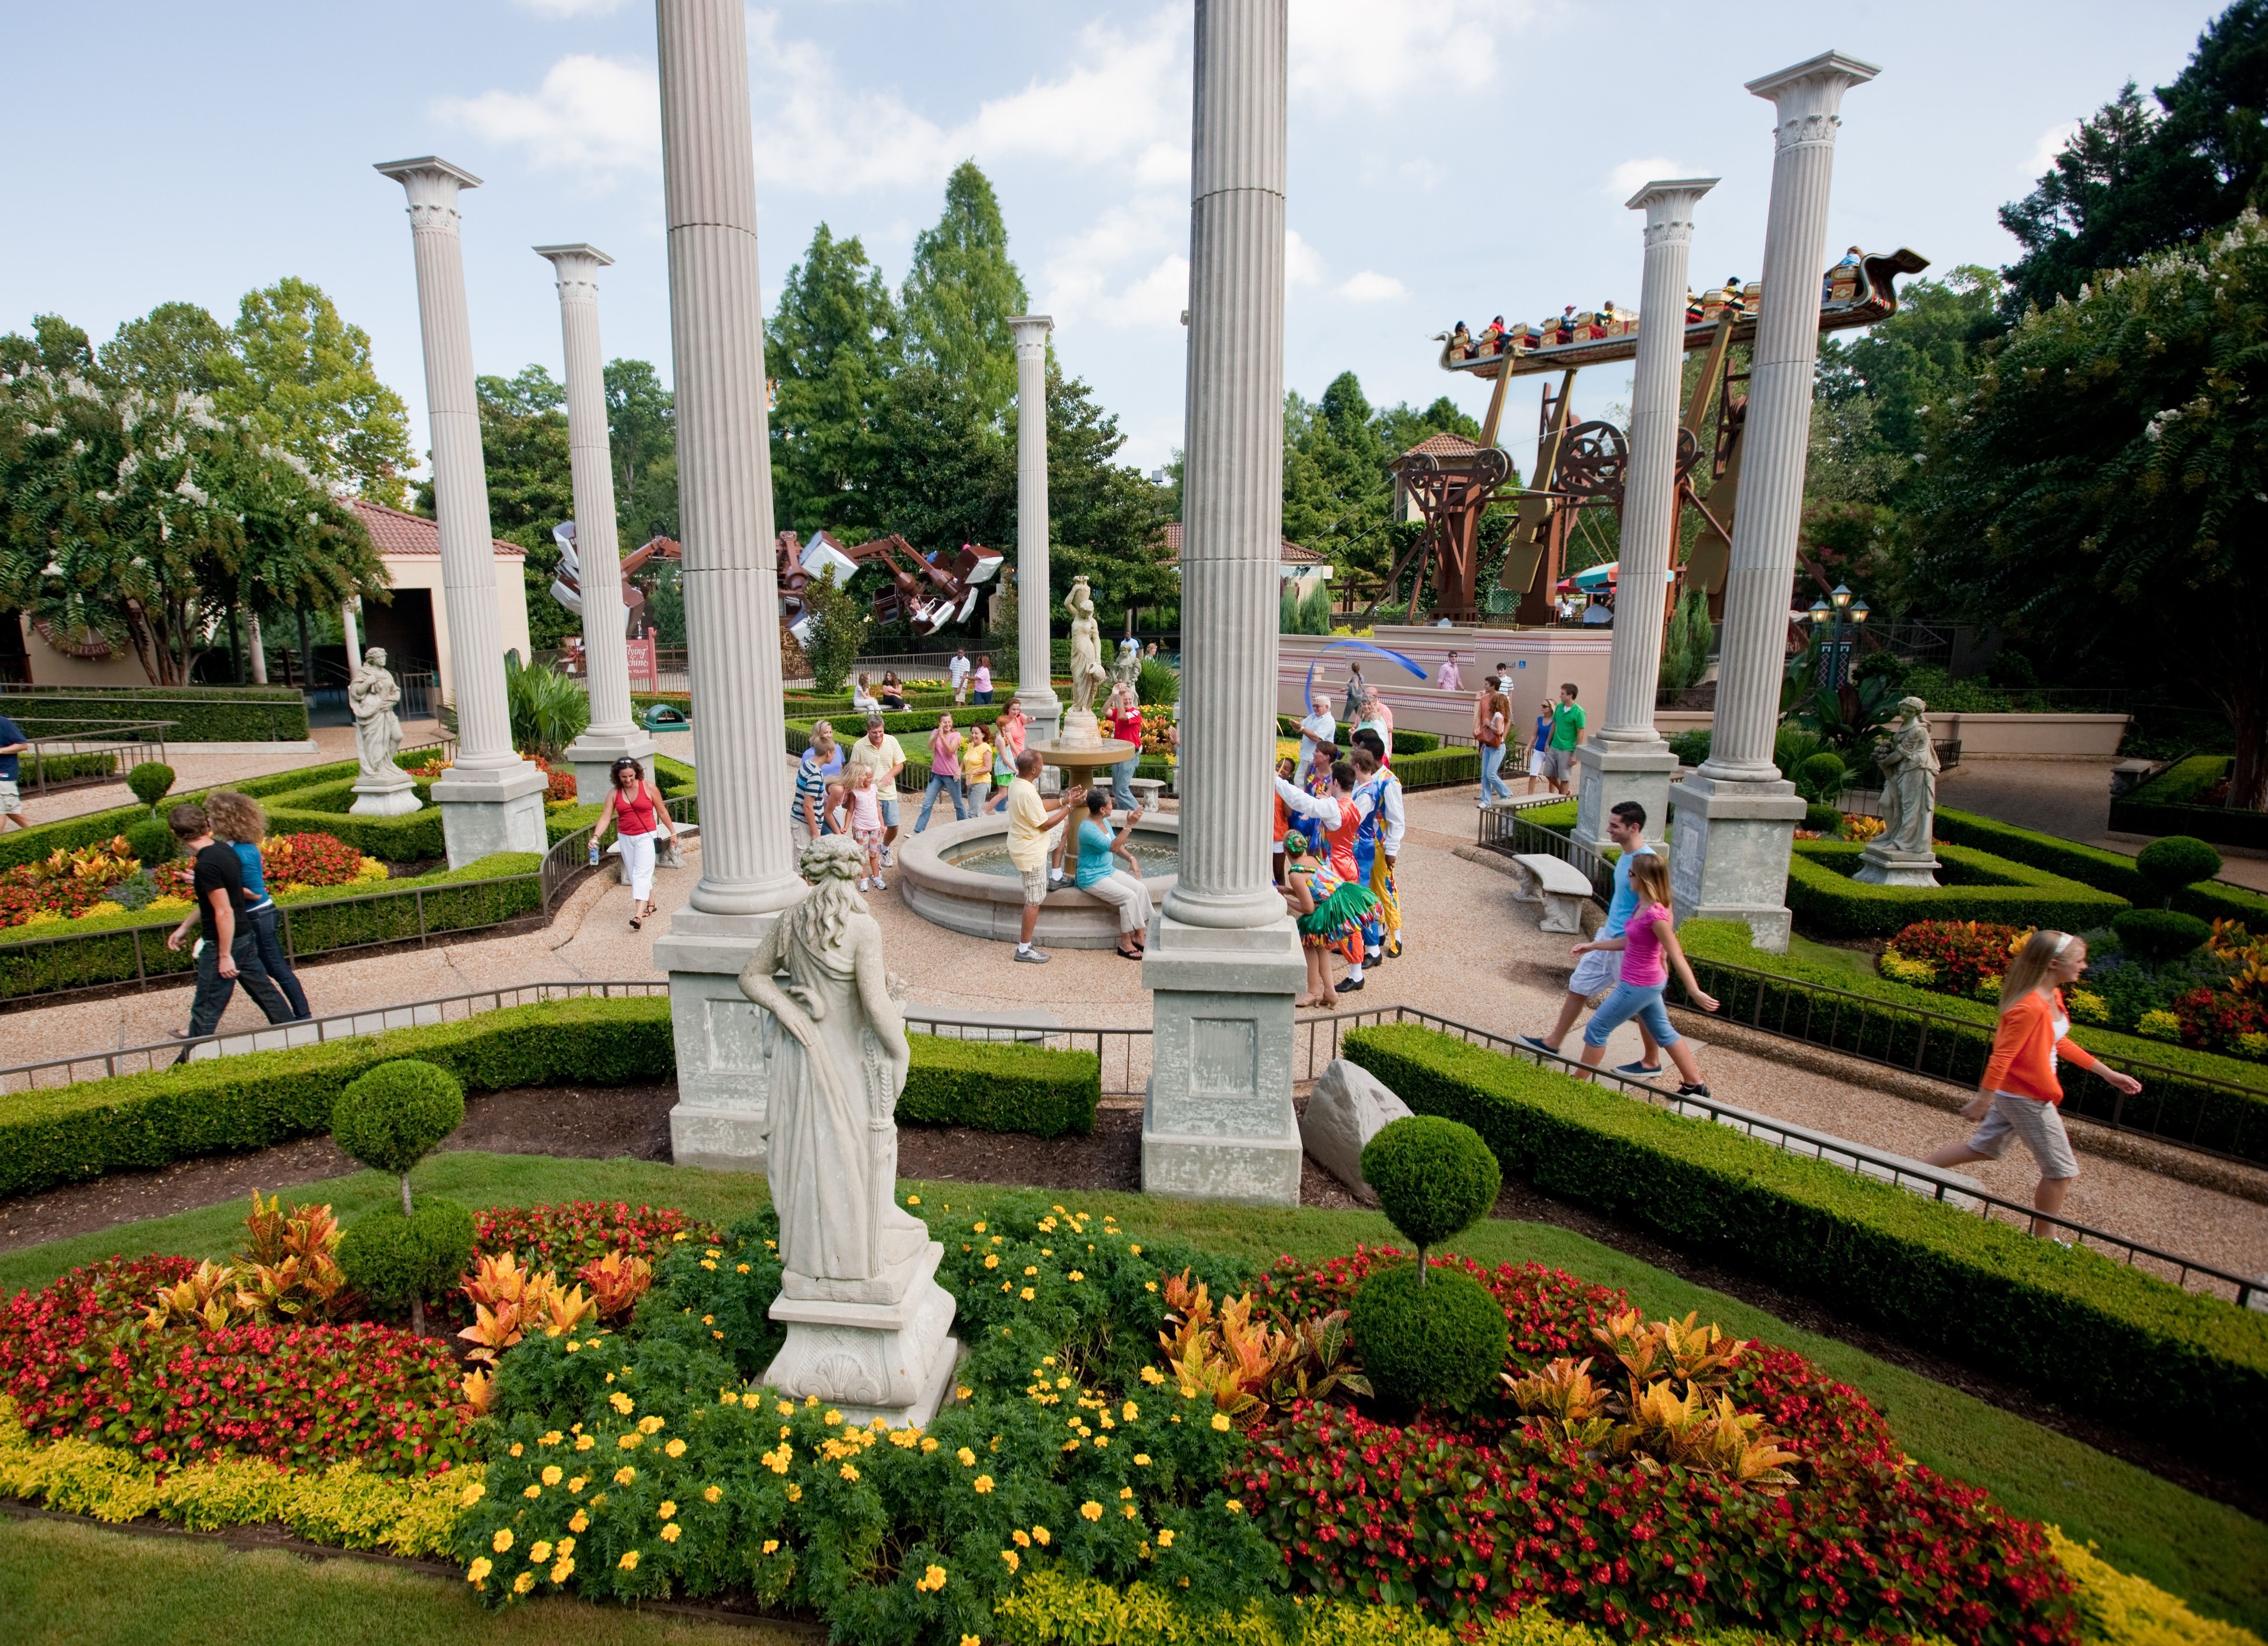 Italy Beautiful Street Side Statues Fountains And Lush Gardens Enhance The Italian Ambiance Of